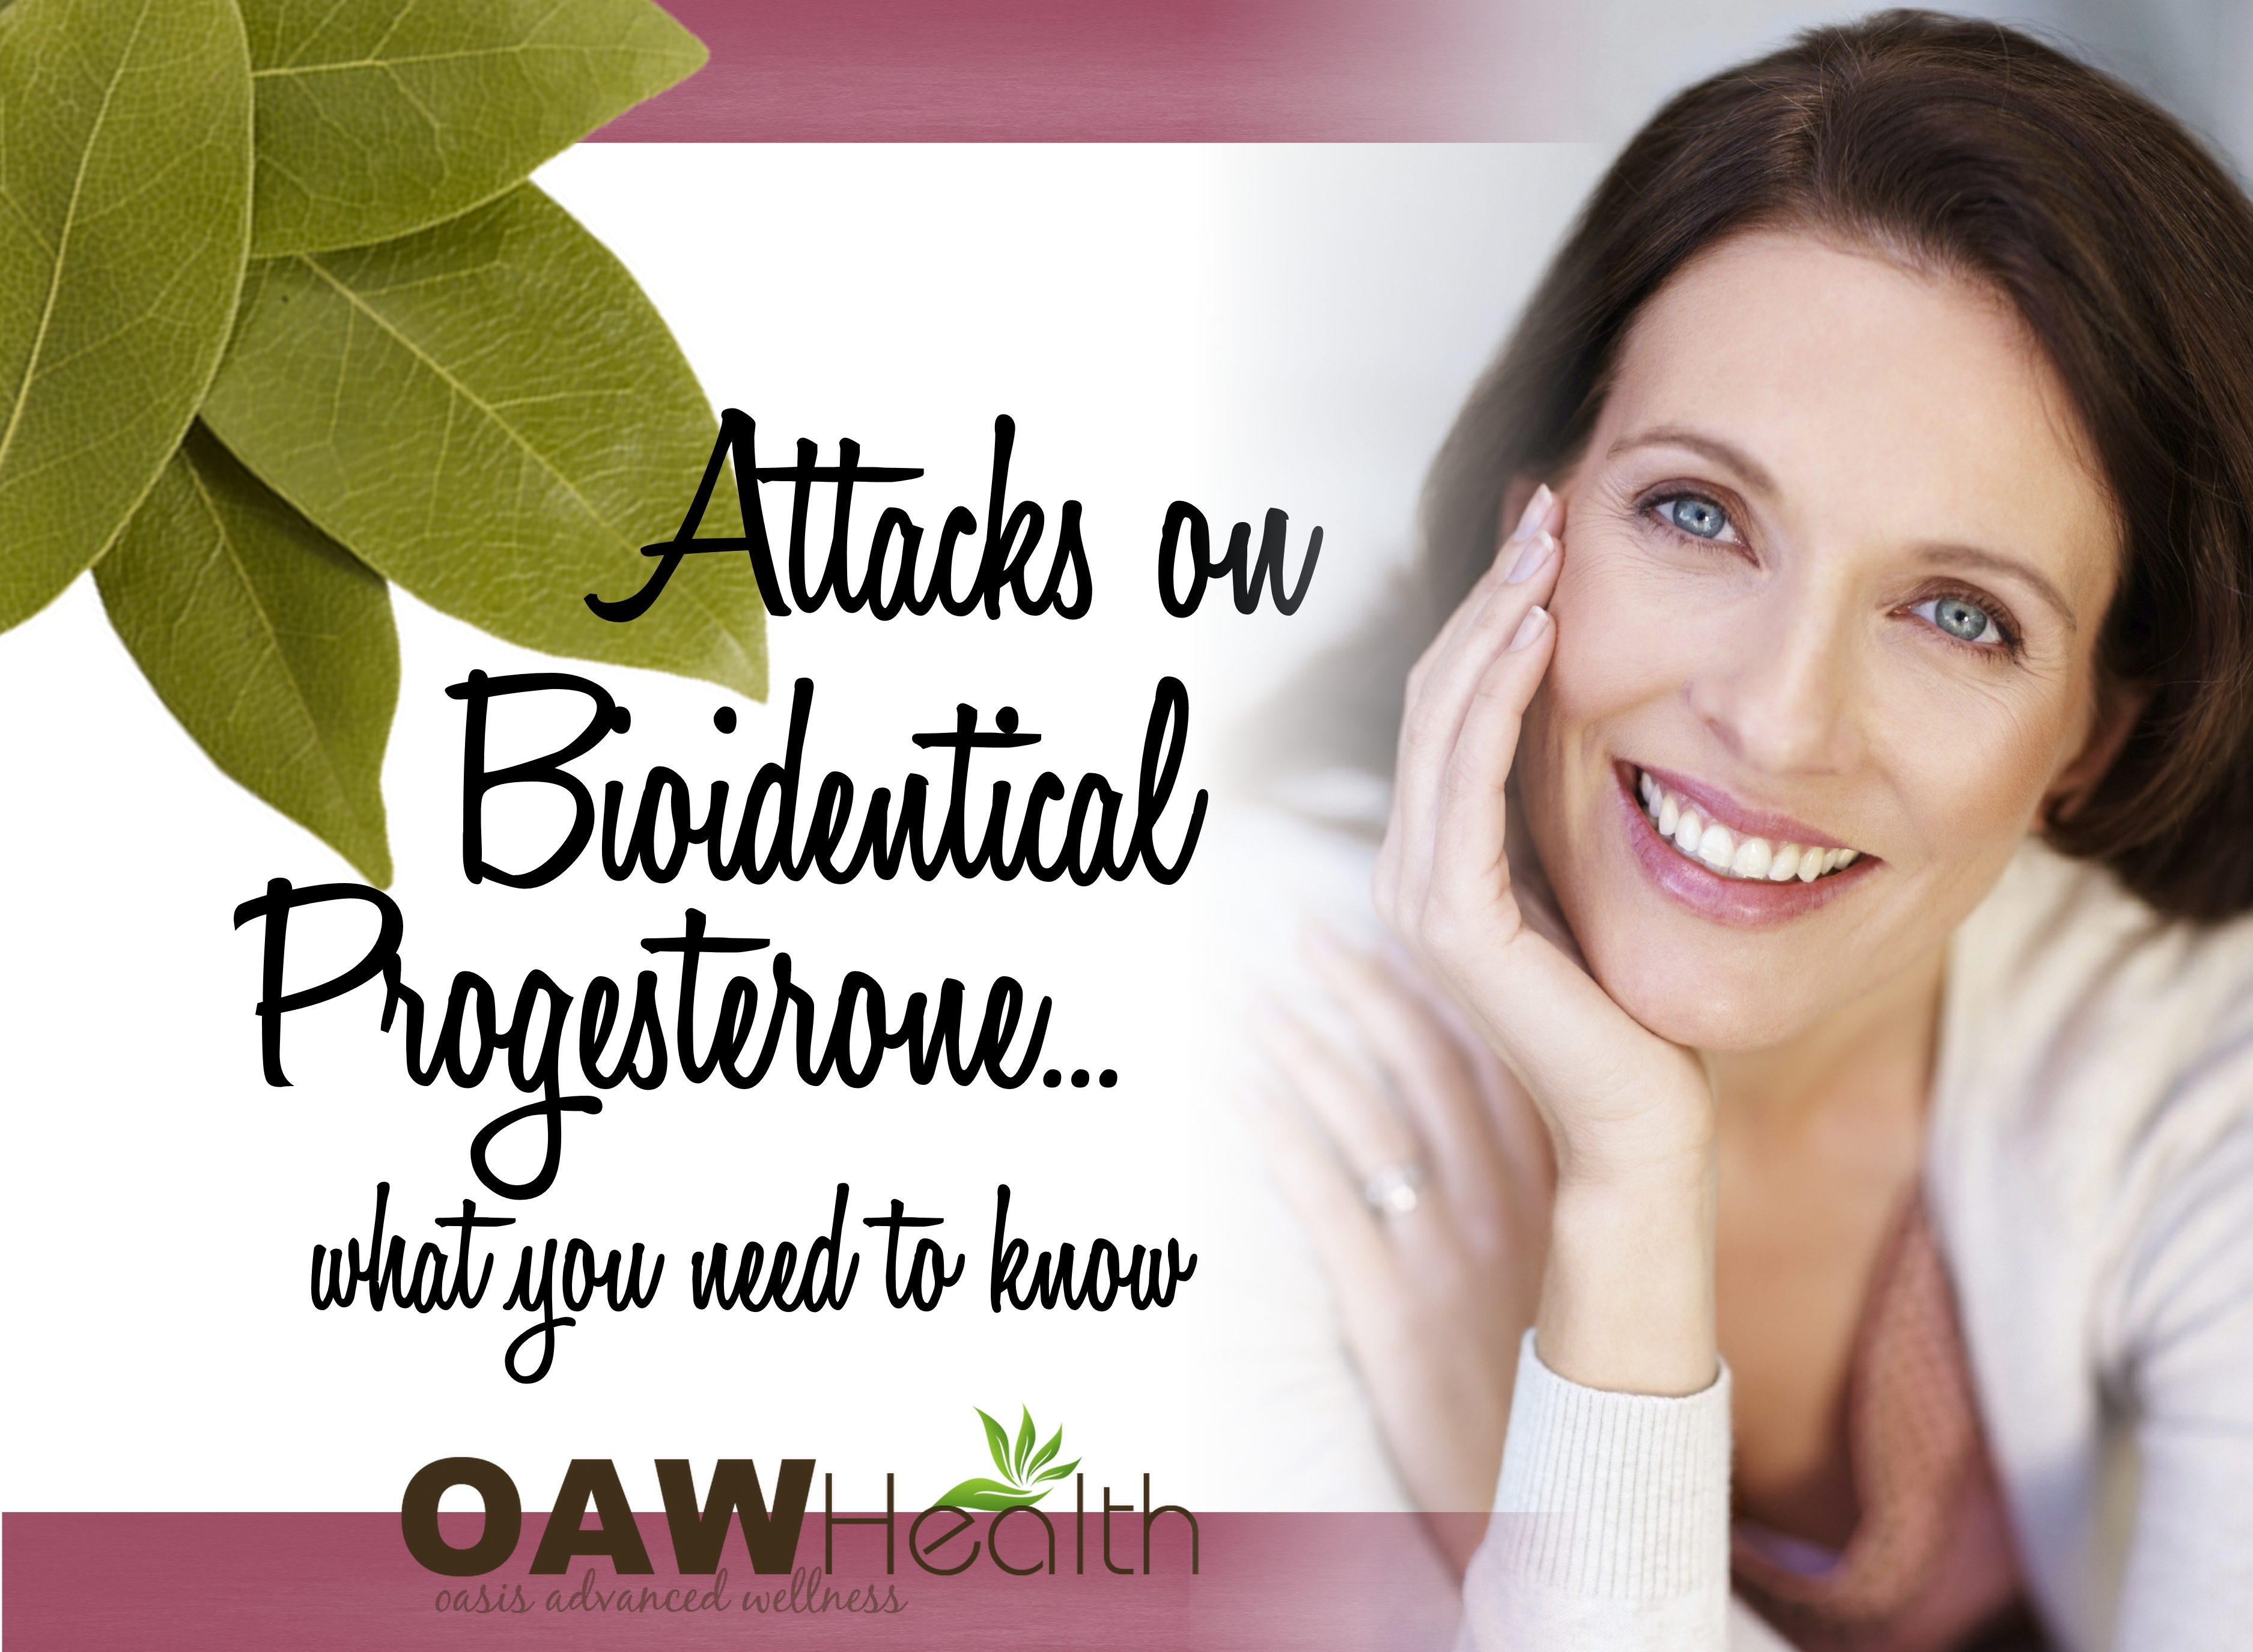 Attacks on Bioidentical Progesterone – What You Need to Know